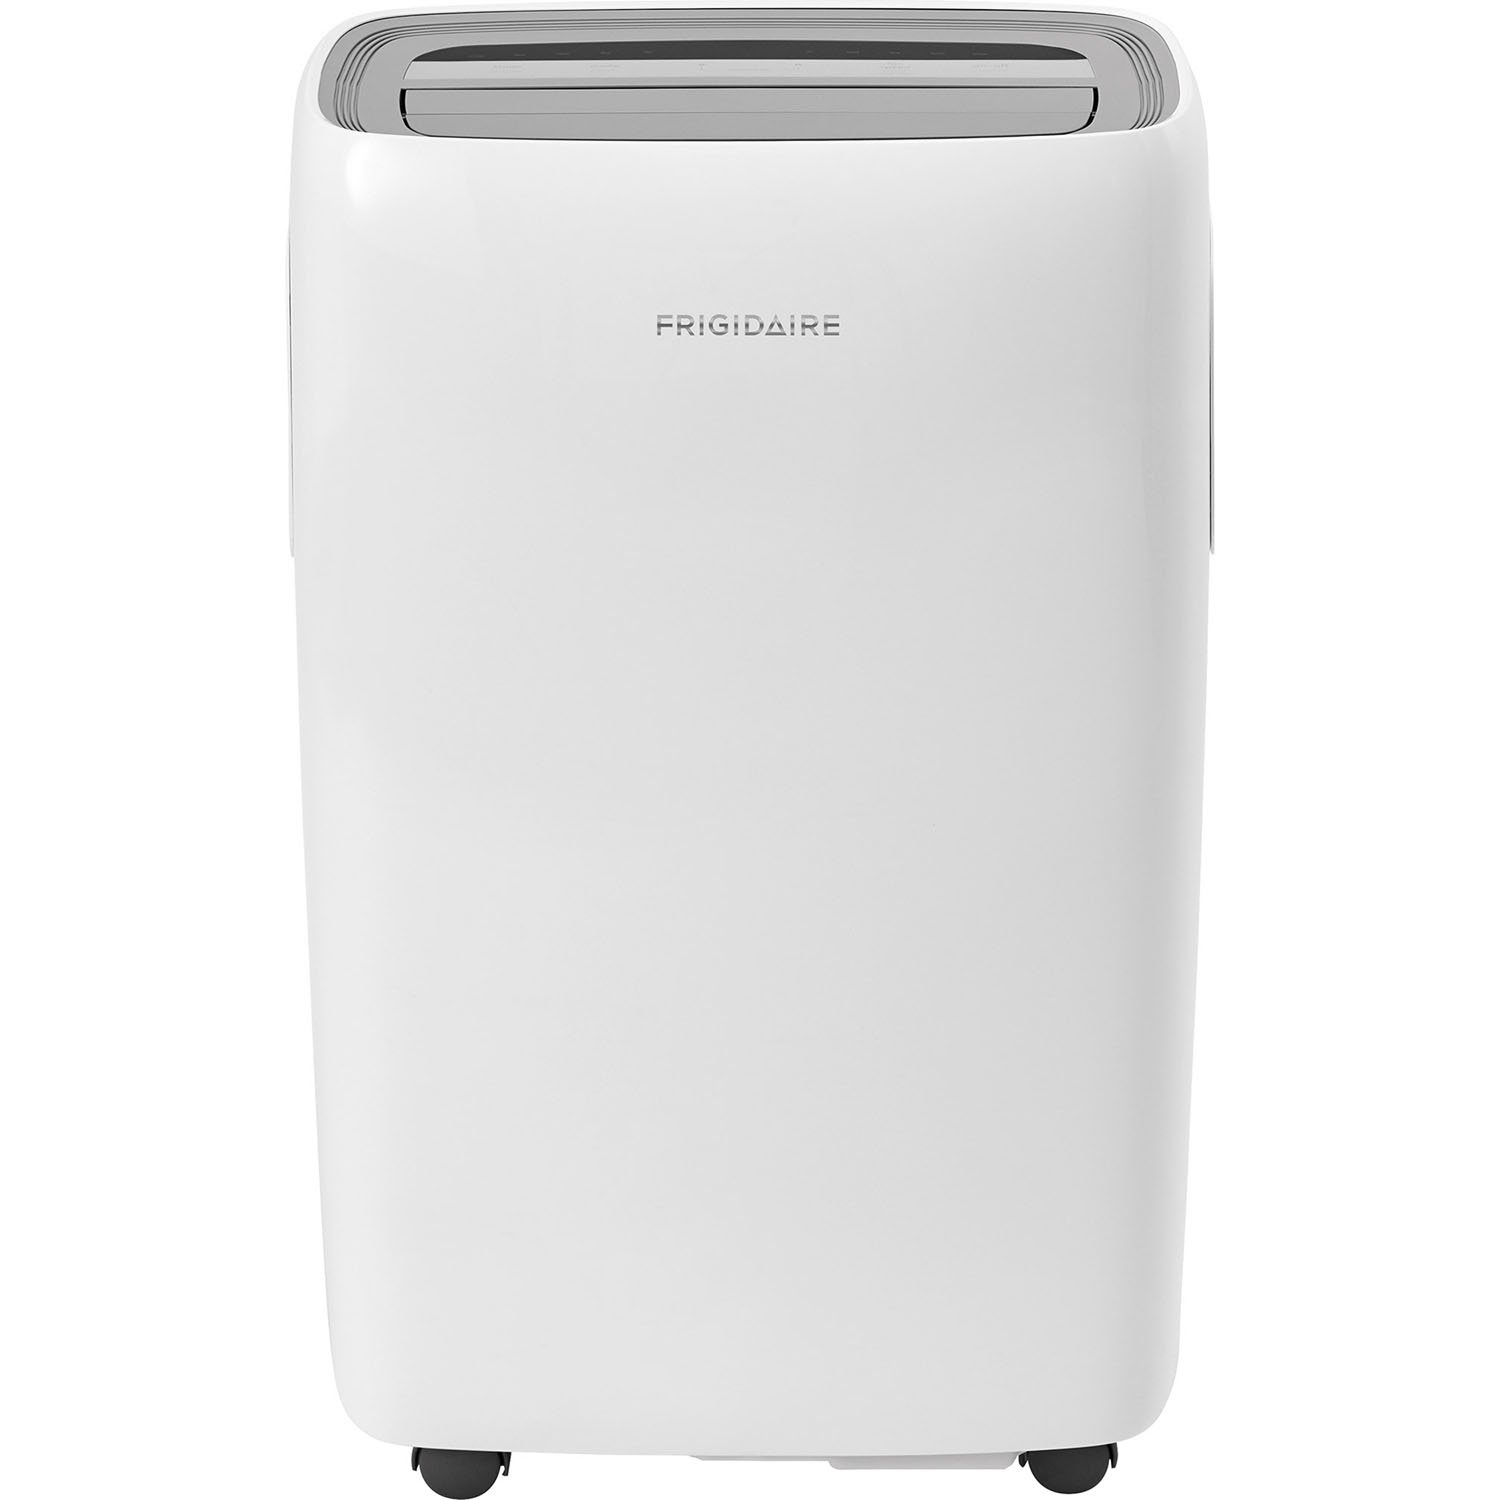 Amazon Frigidaire White 8 000 Btu Portable Air Conditioner with